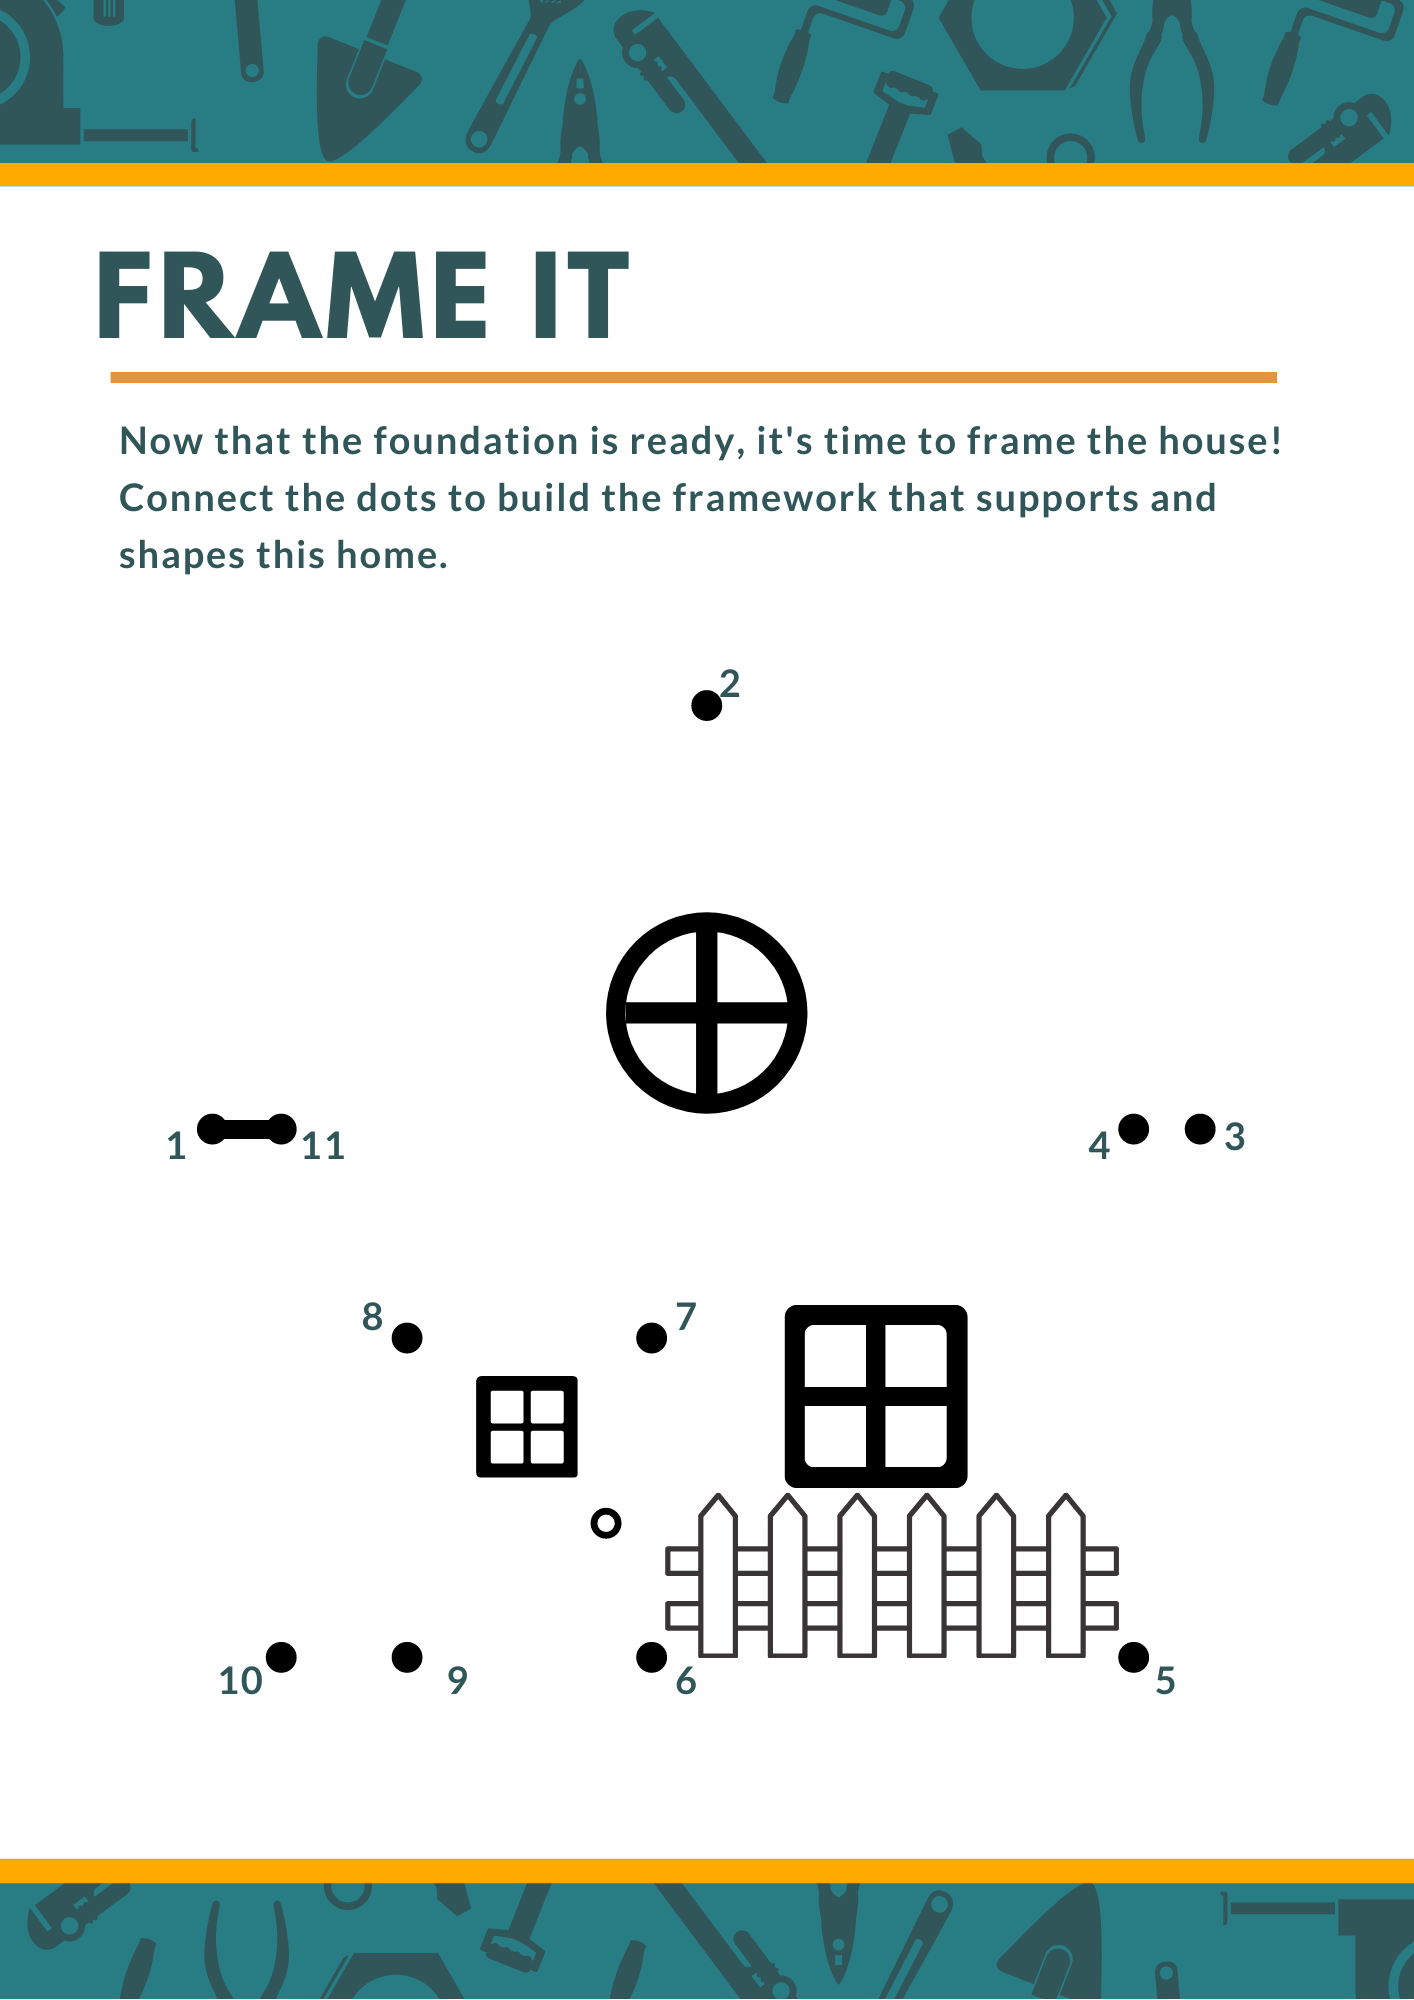 Frame it connect the dot activity page